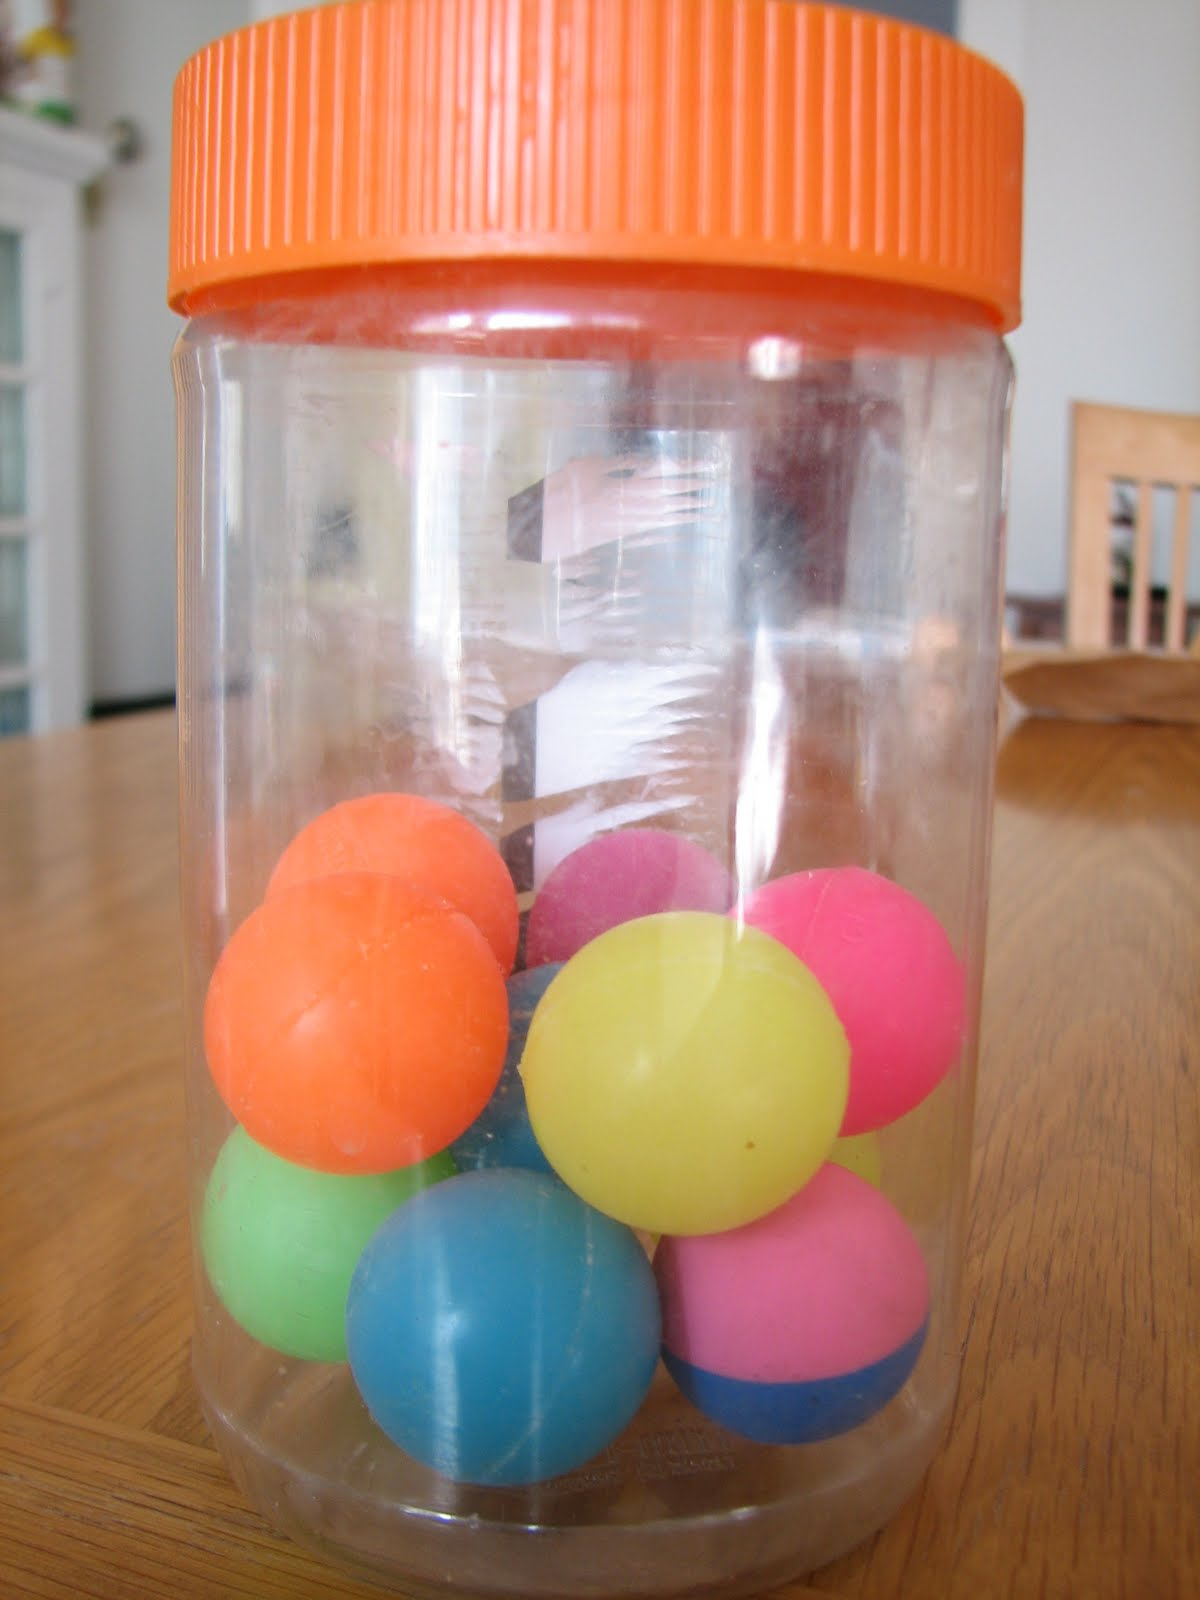 matter science states atoms chemistry activities cool balls matters experiments bouncy molecules particles fun physical kinetic demonstrations energy lessons structure